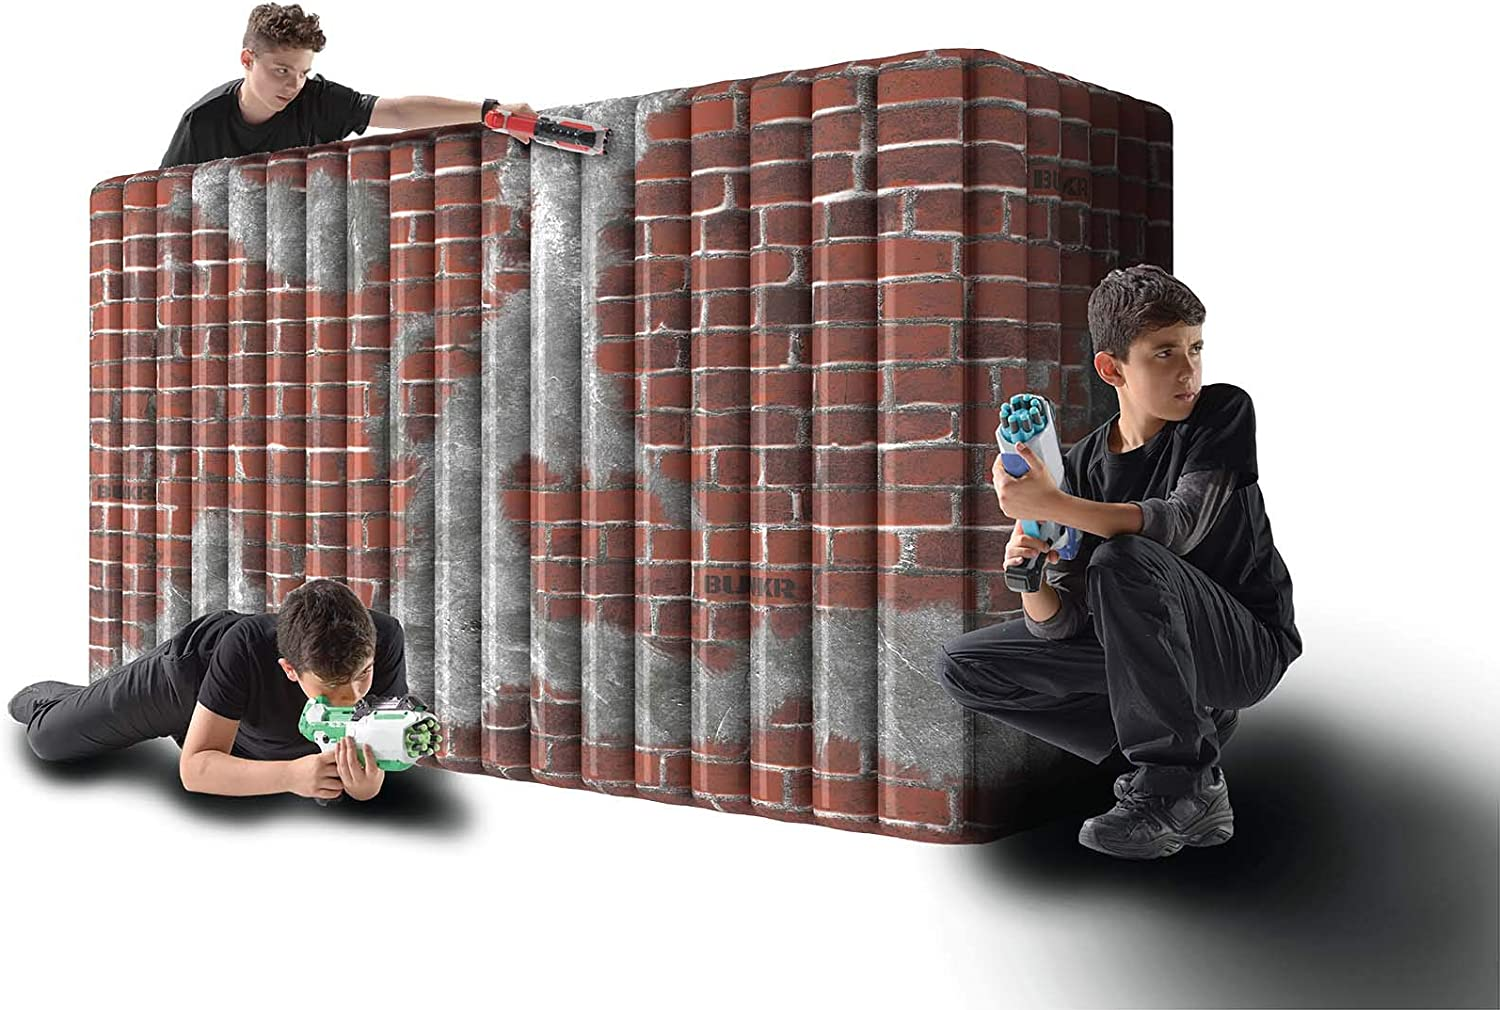 X-Shot /& Boomco Laser X BUNKR BattleZone Inflatable MEGA Wall Compatible with Nerf